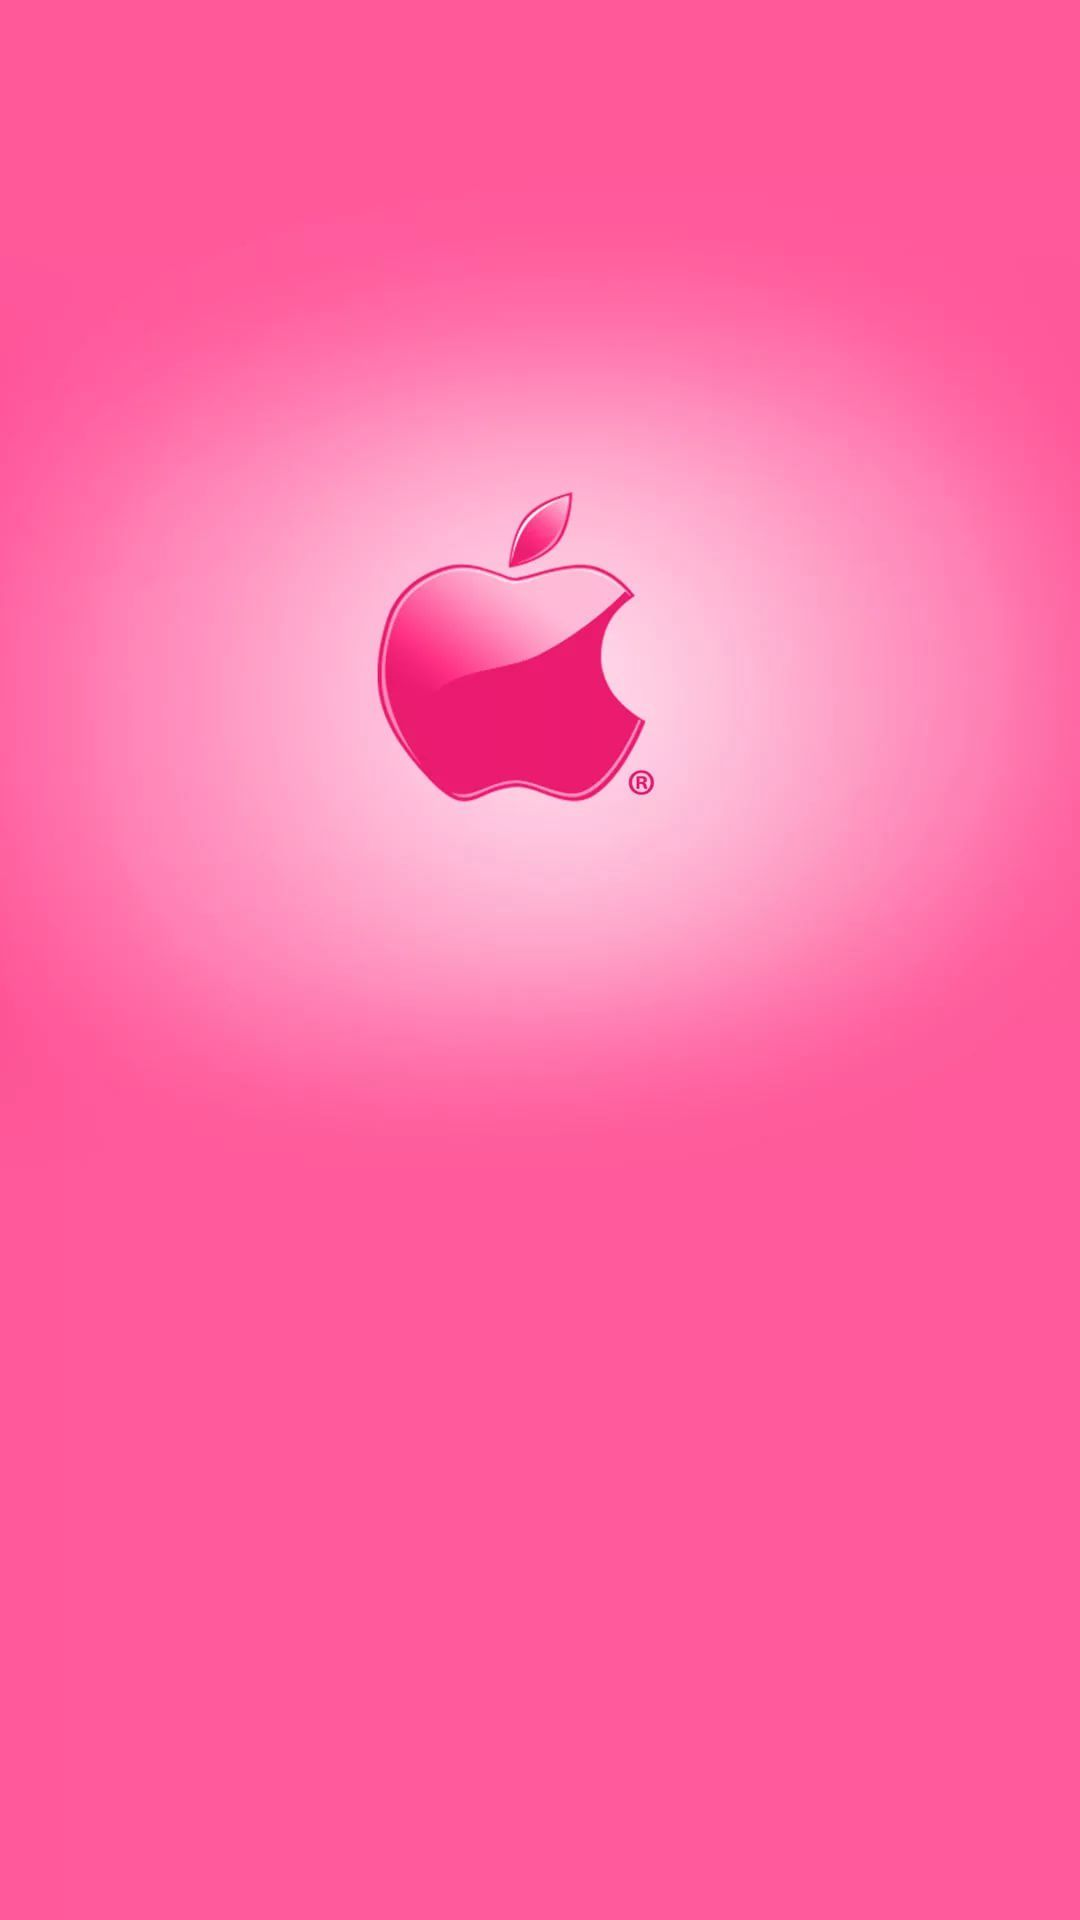 Solid Pink wallpaper for iPhone